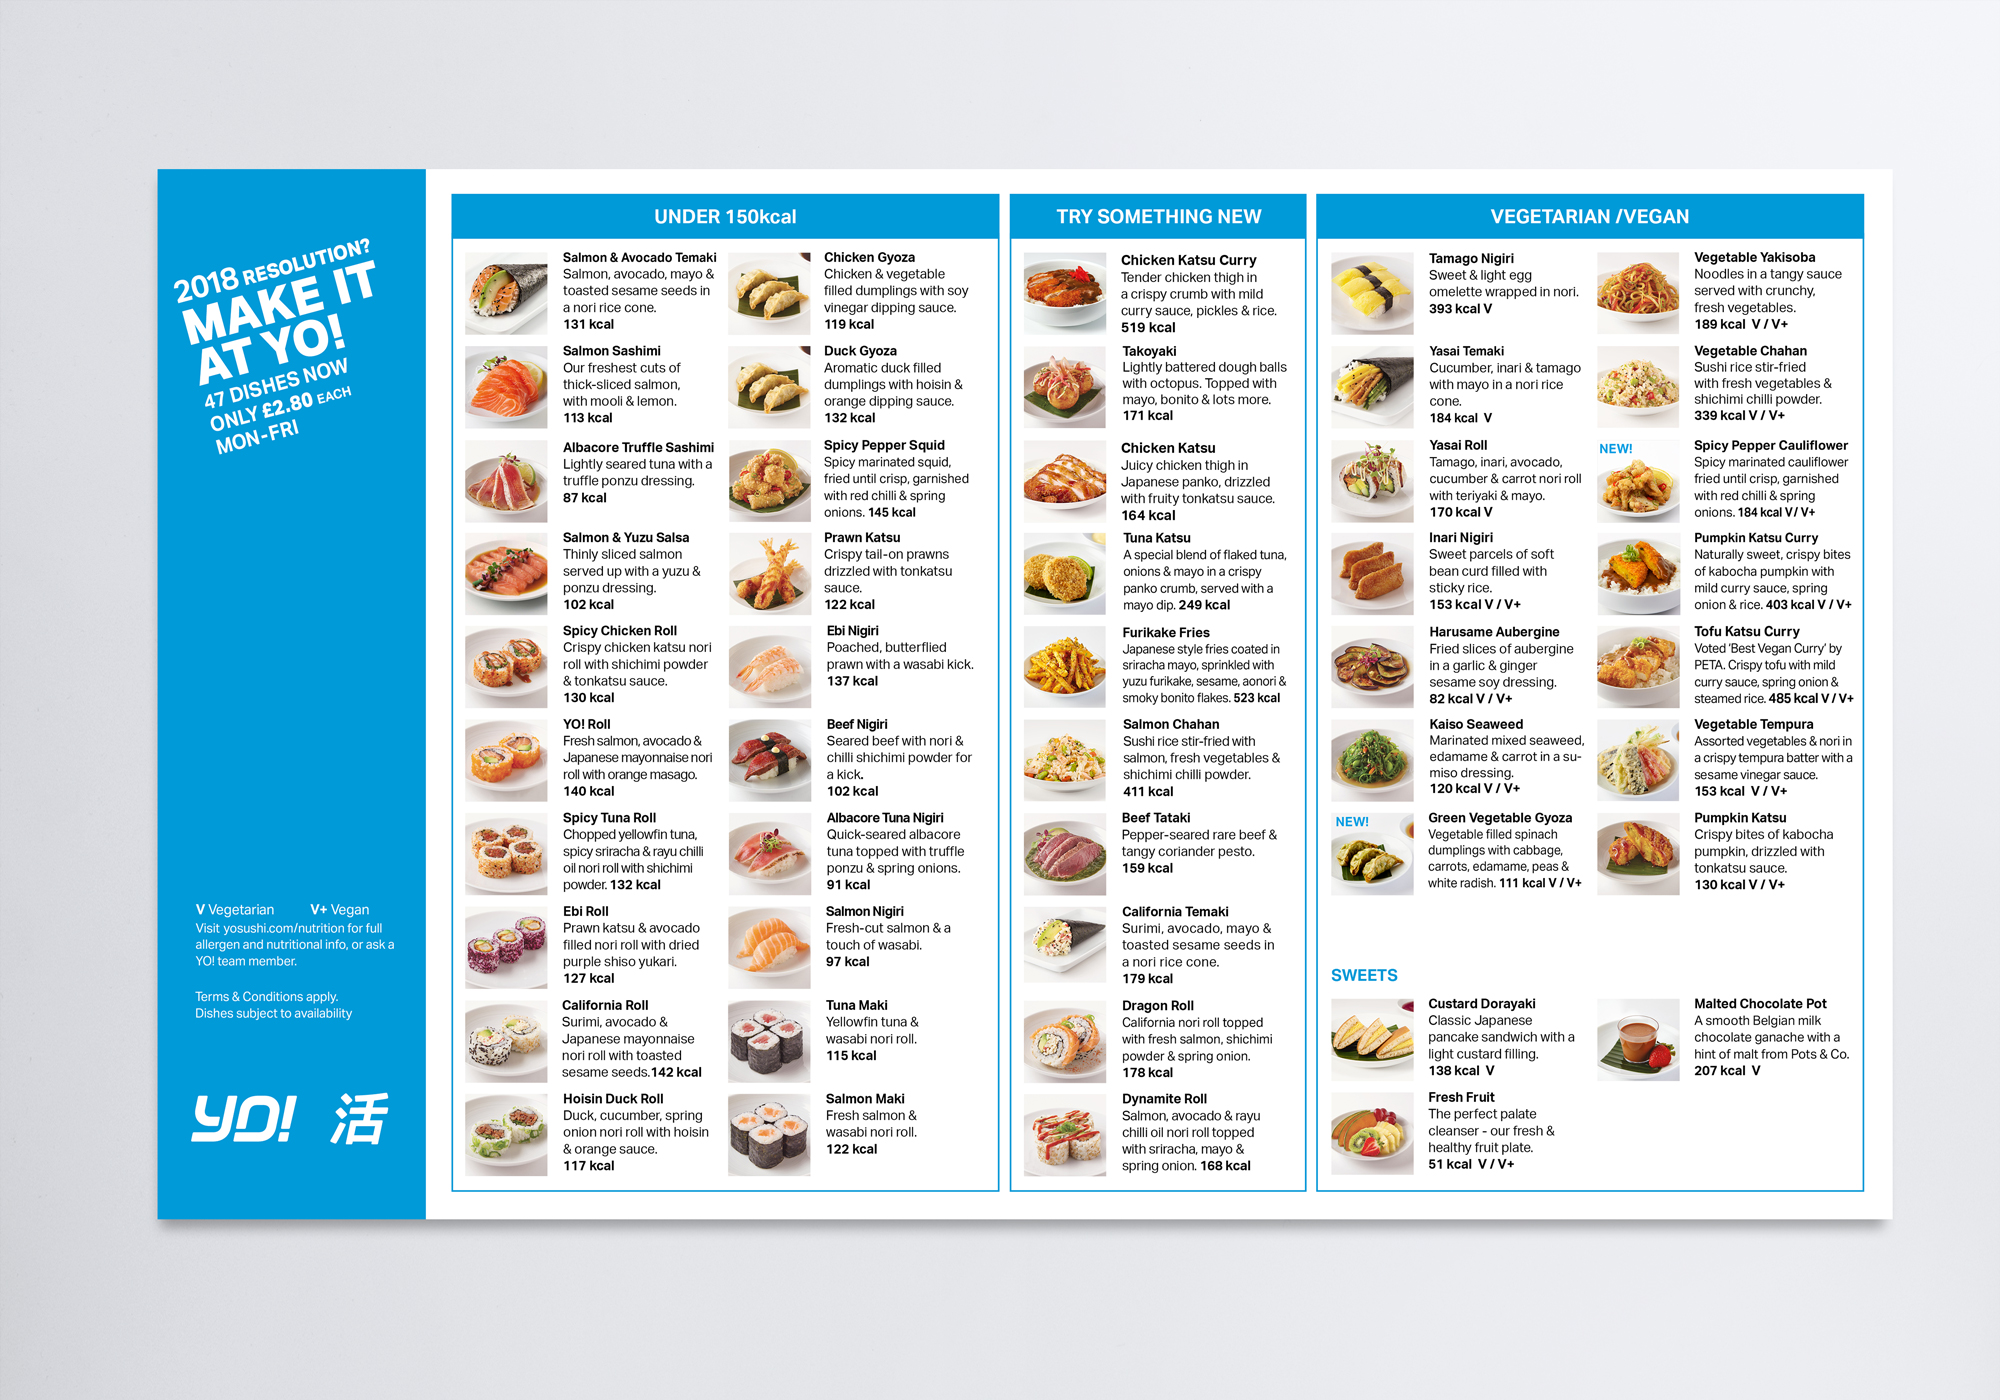 A new menu shows the variety of dishes at YO!in a simple and easy way.